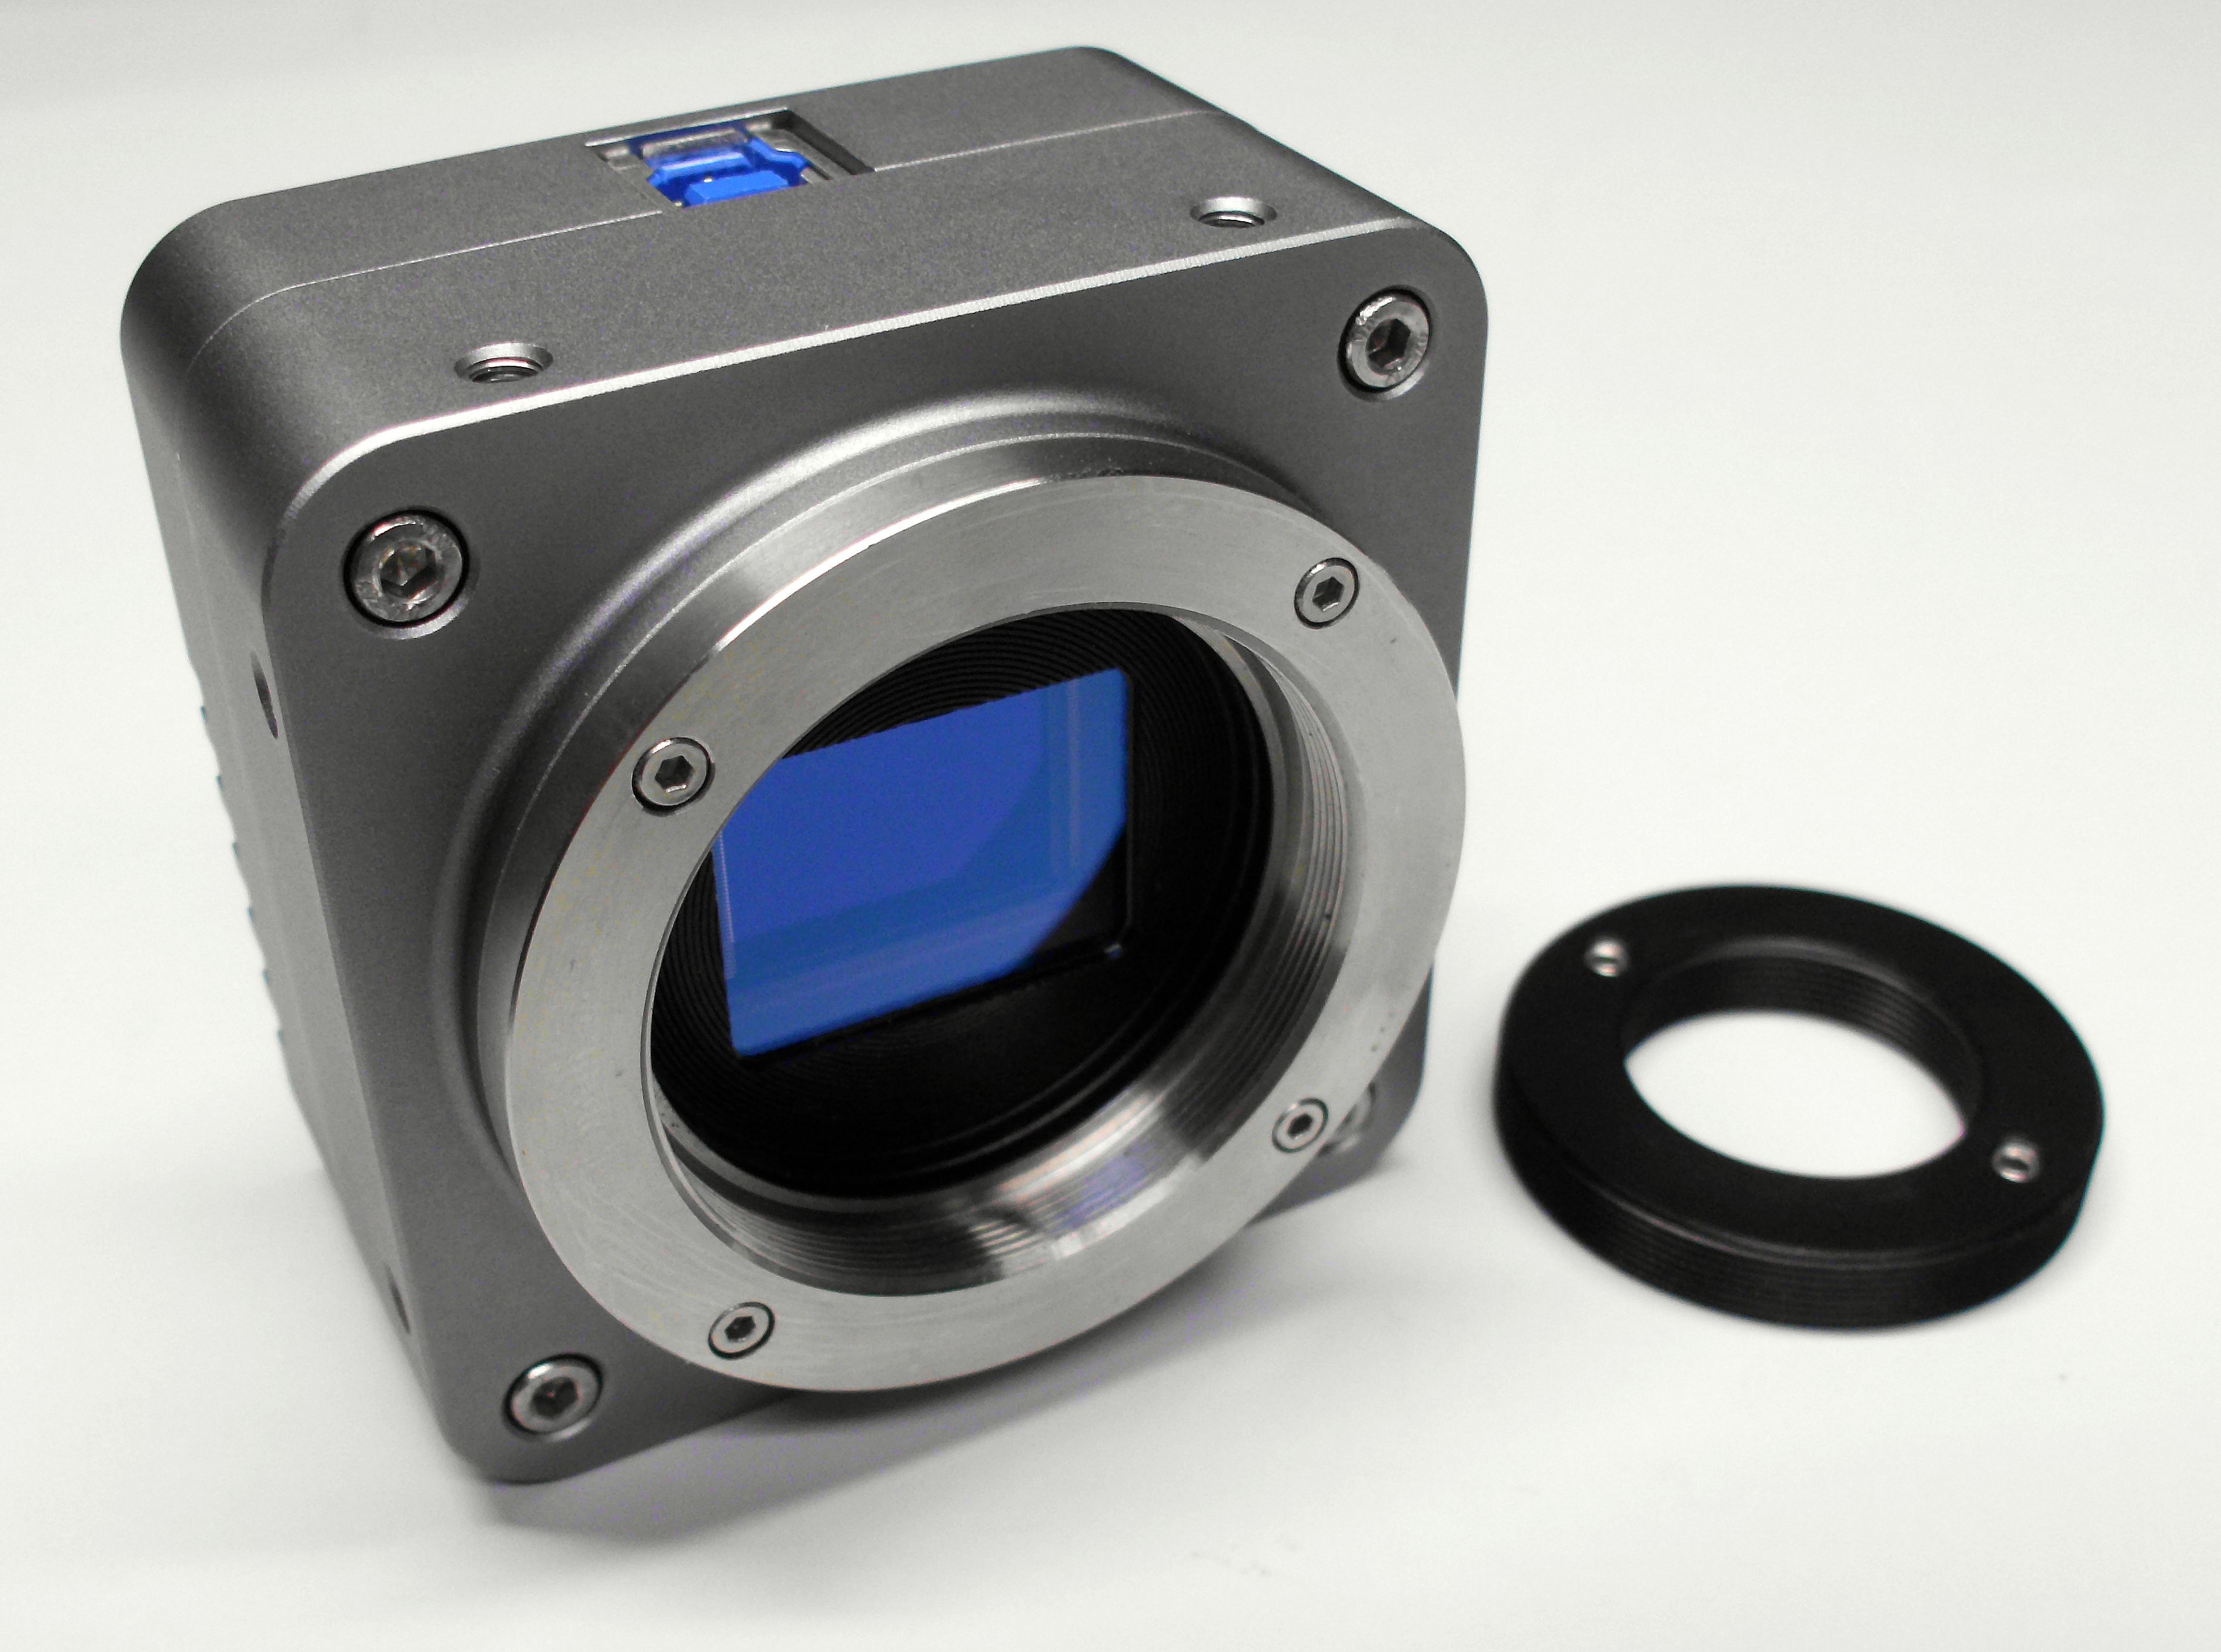 EHD Products: CCD / CMOS Cameras with USB3 0 and USB2 0